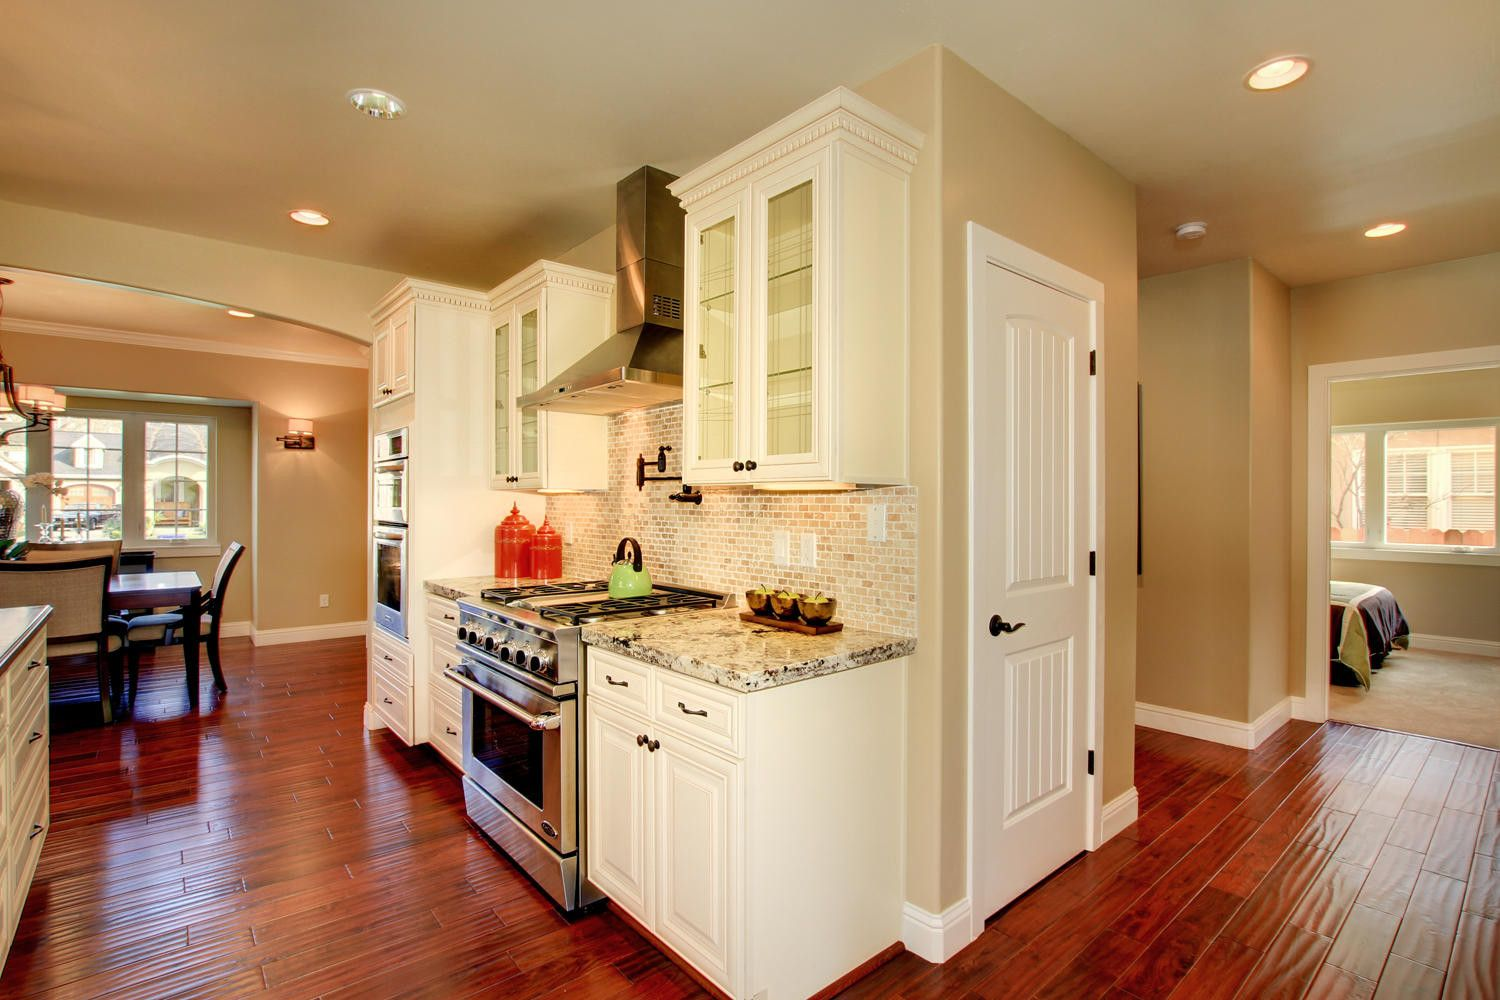 Gentil 77+ Grand J And K Cabinets   Small Kitchen Island Ideas With Seating Check  More